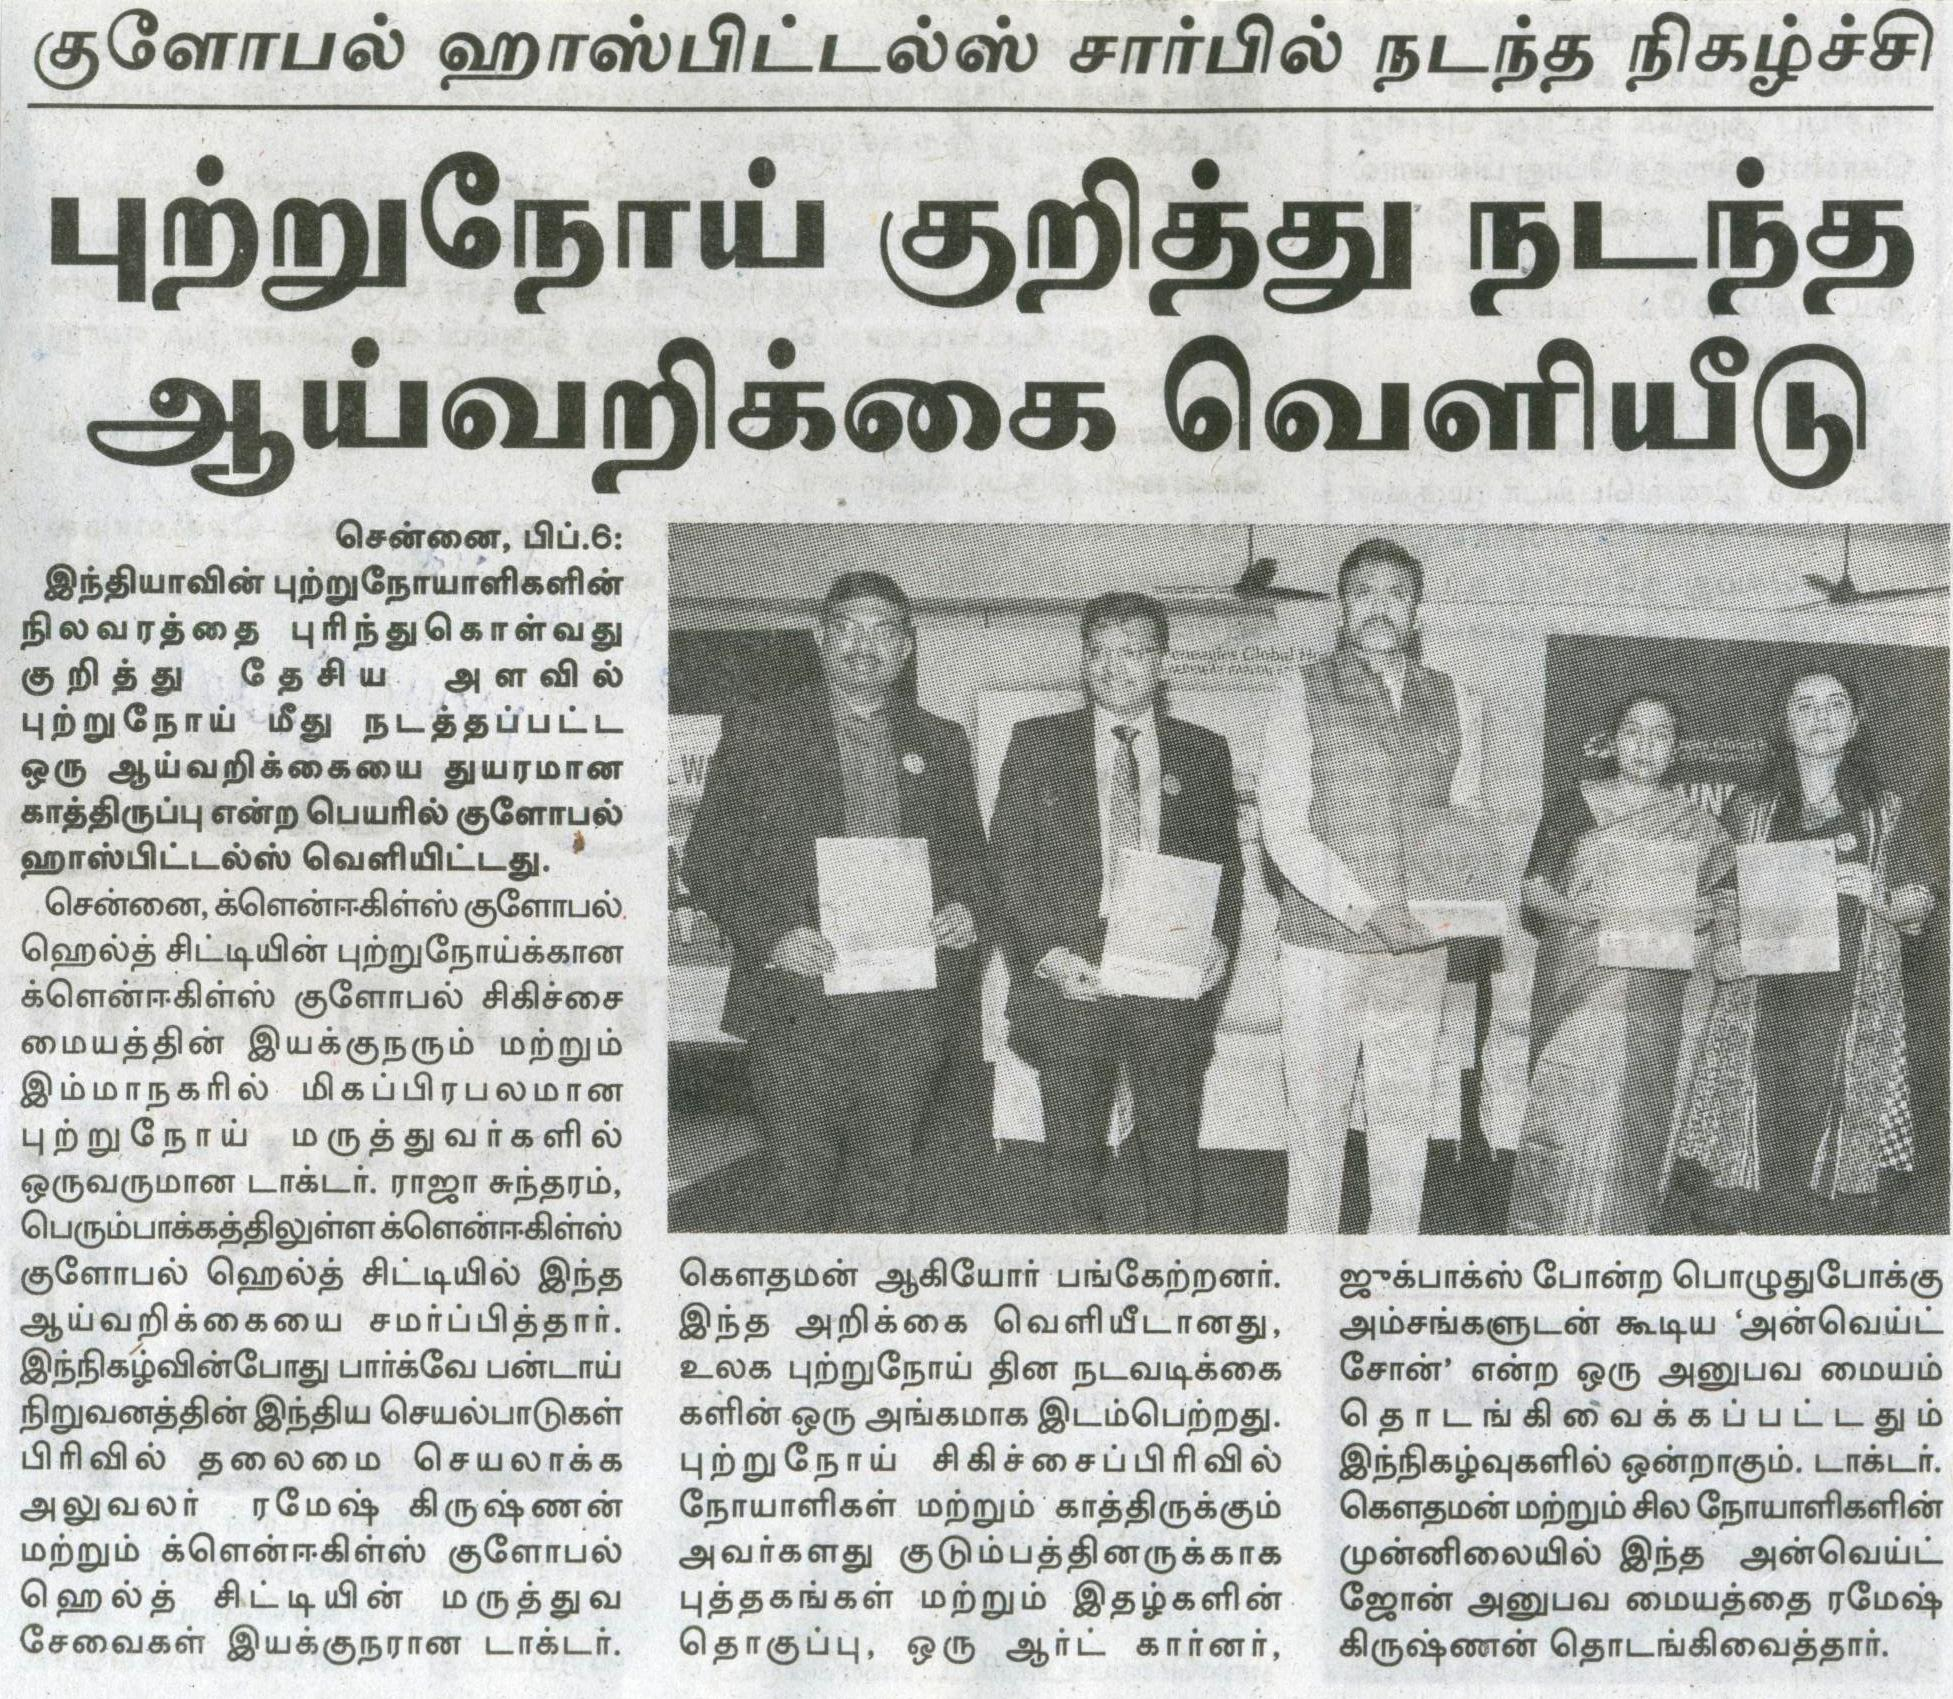 Gleneagle Global Hospital 07.02.2017 Maalai Sudar Pg 02